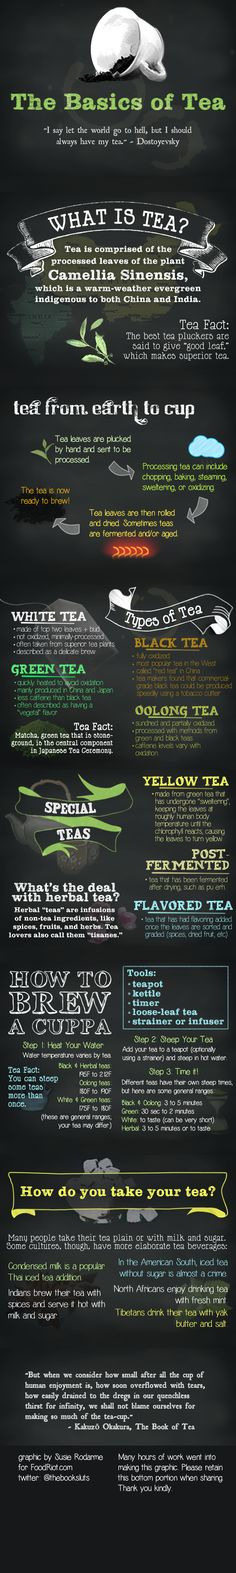 The Basics of Tea: How to brew tea, how tea is produced, different types of tea.